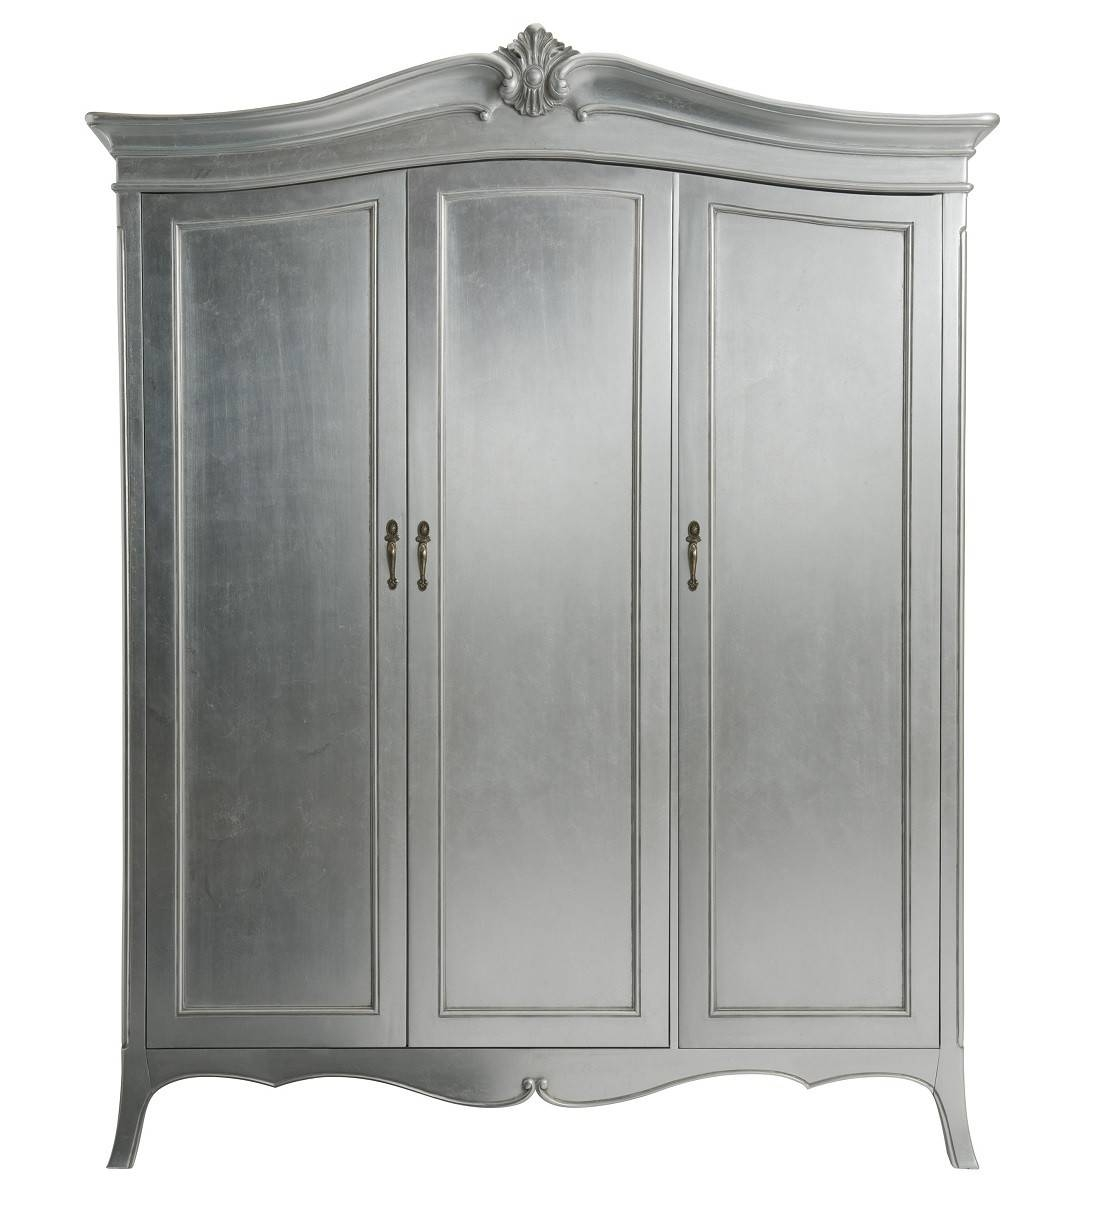 Louis French Silver Leaf 3 Door Triple Wardrobe | Oak Furniture Uk for 3 Door French Wardrobes (Image 10 of 15)